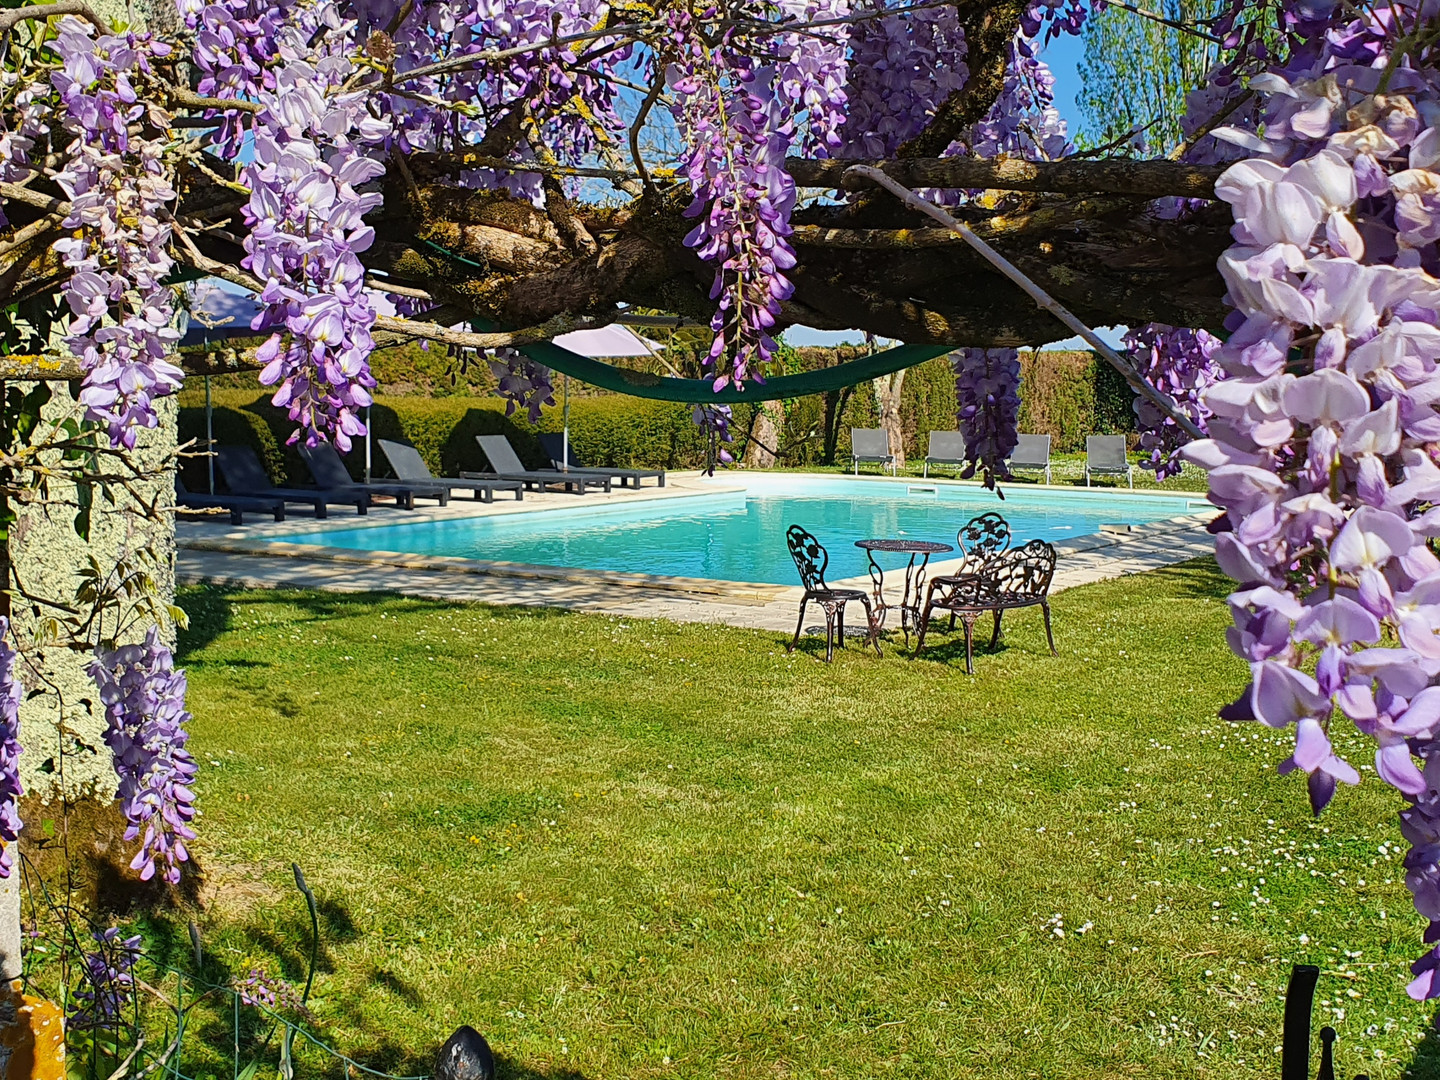 The pool and wisteria